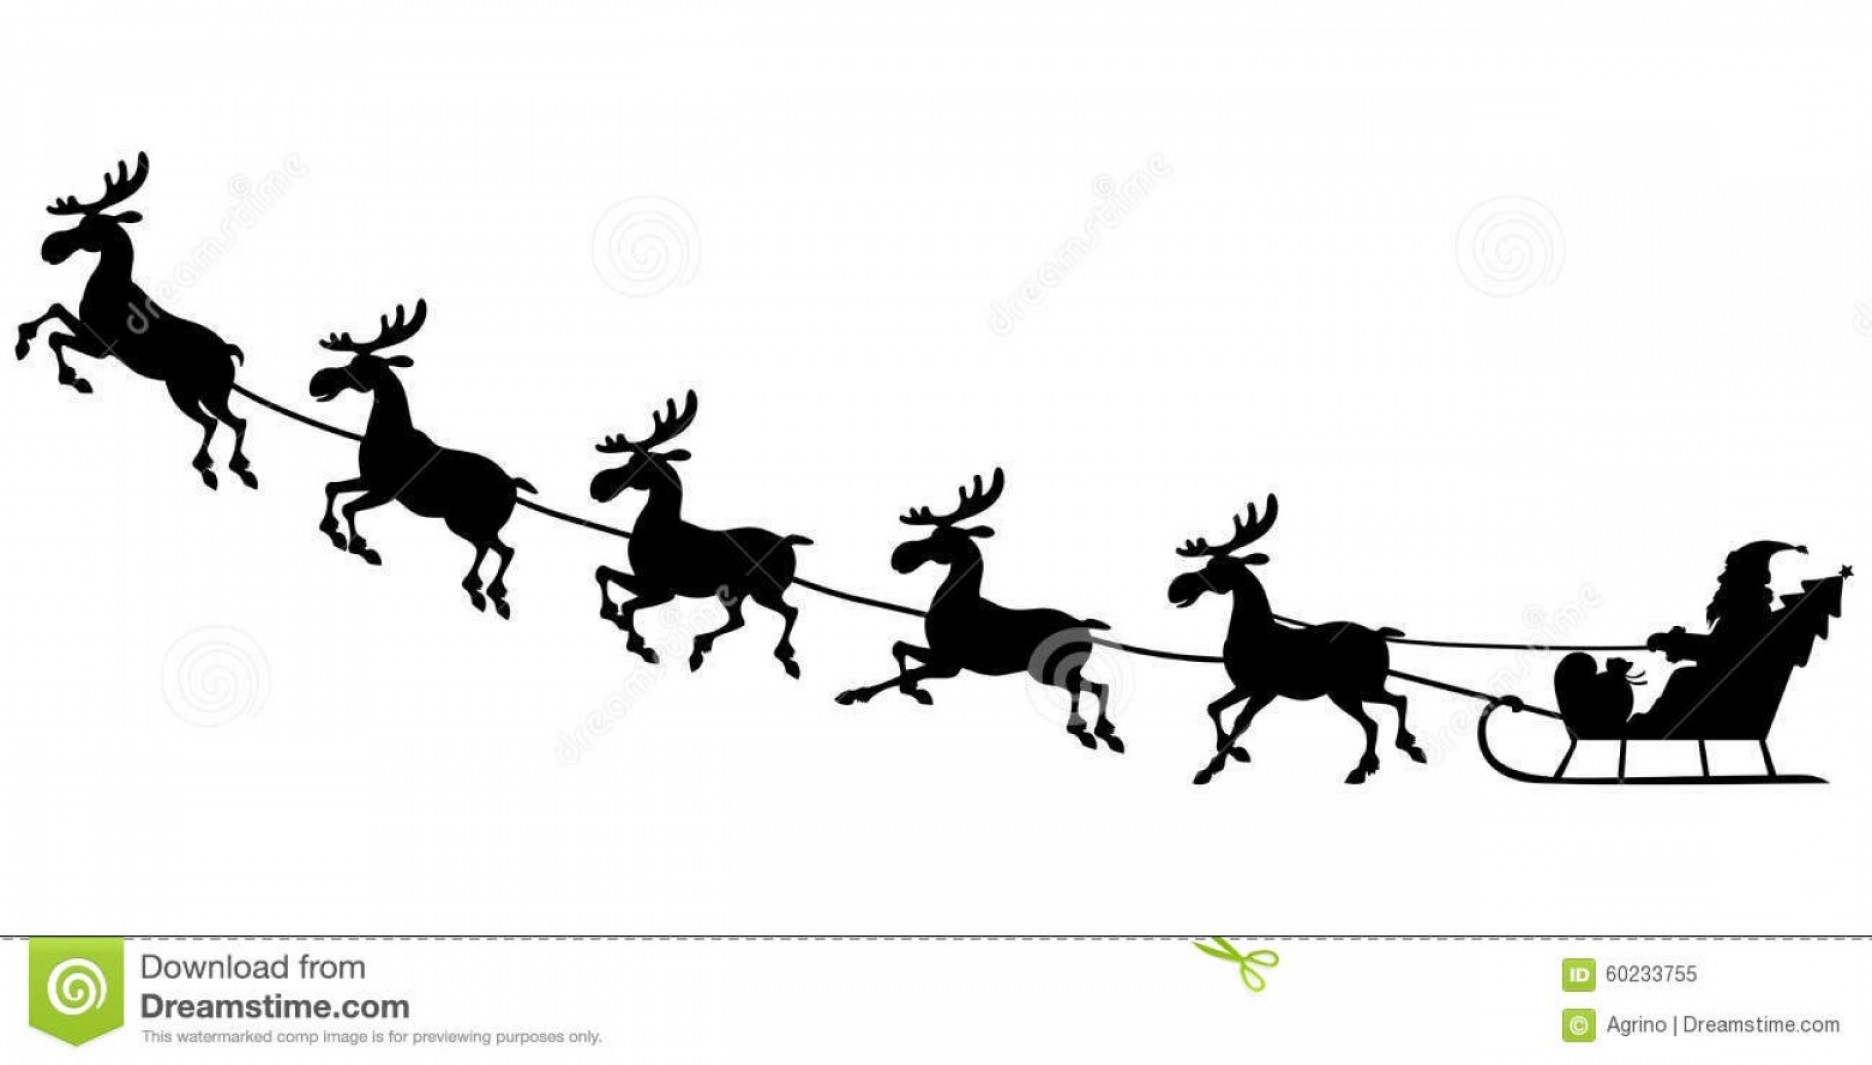 Santa riding in a sleigh with reindeer clipart picture transparent download Stock Illustration Silhouette Santa Riding Reindeer Sleigh ... picture transparent download